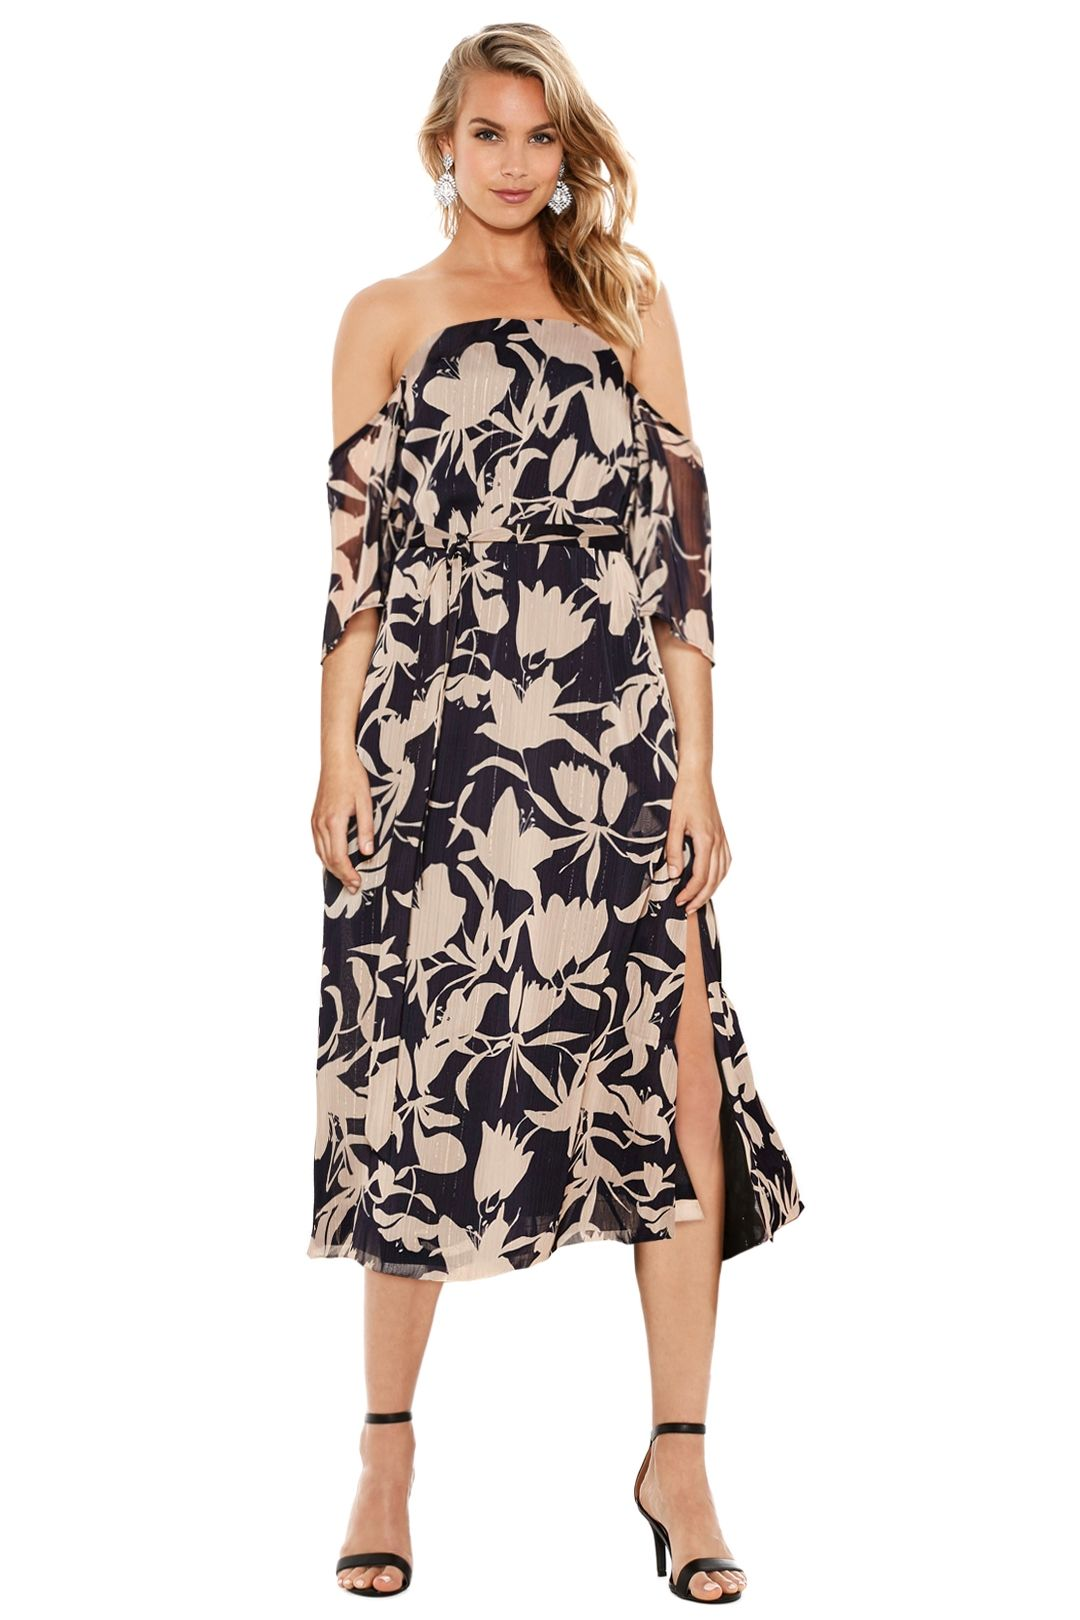 Talulah - Orchard Off The Shoulder Maxi Dress - Navy Floral - Front